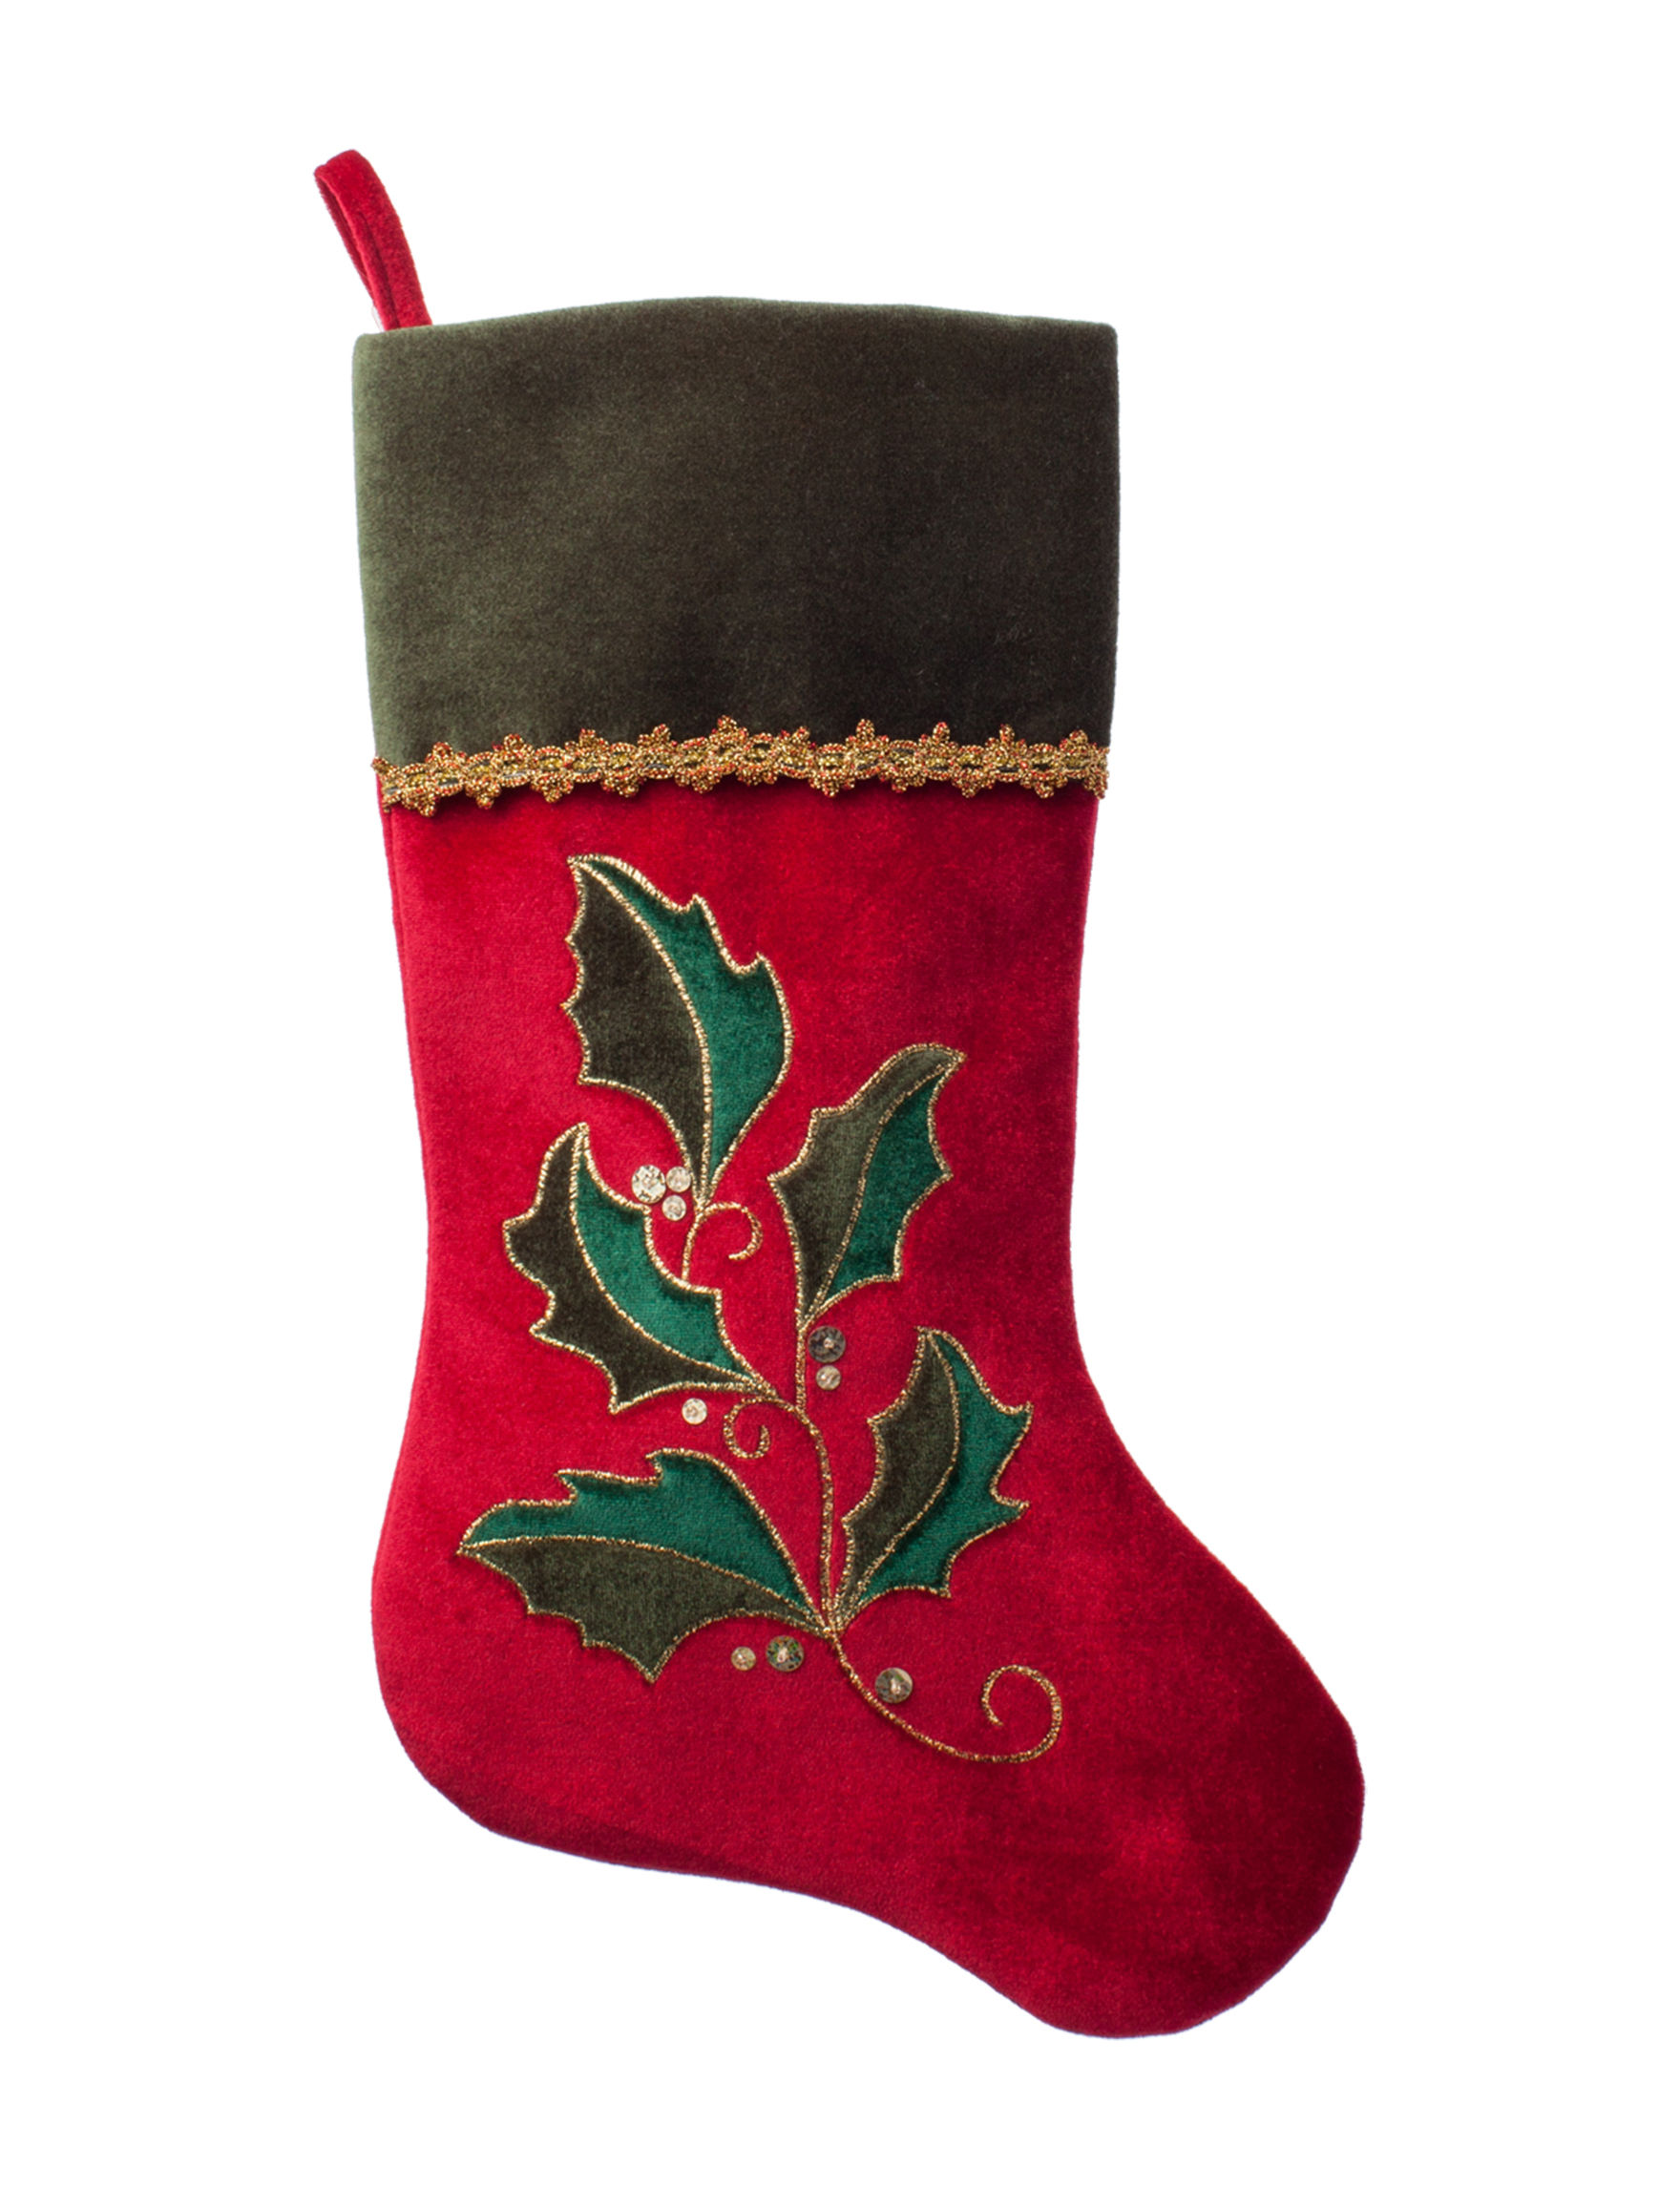 Northlight Red / Green Stockings & Tree Skirts Holiday Decor